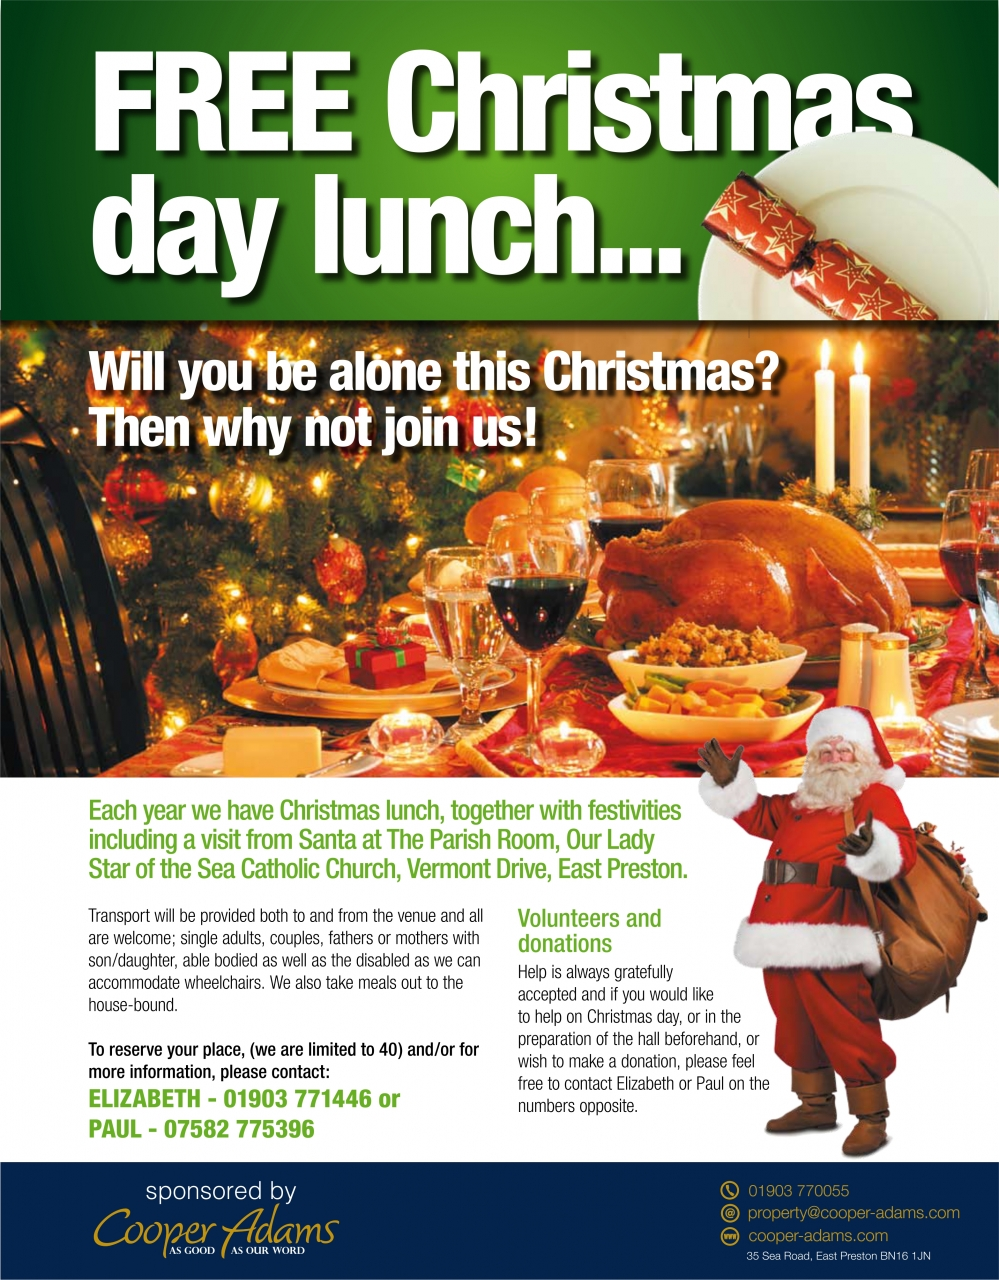 Free Christmas day lunch...